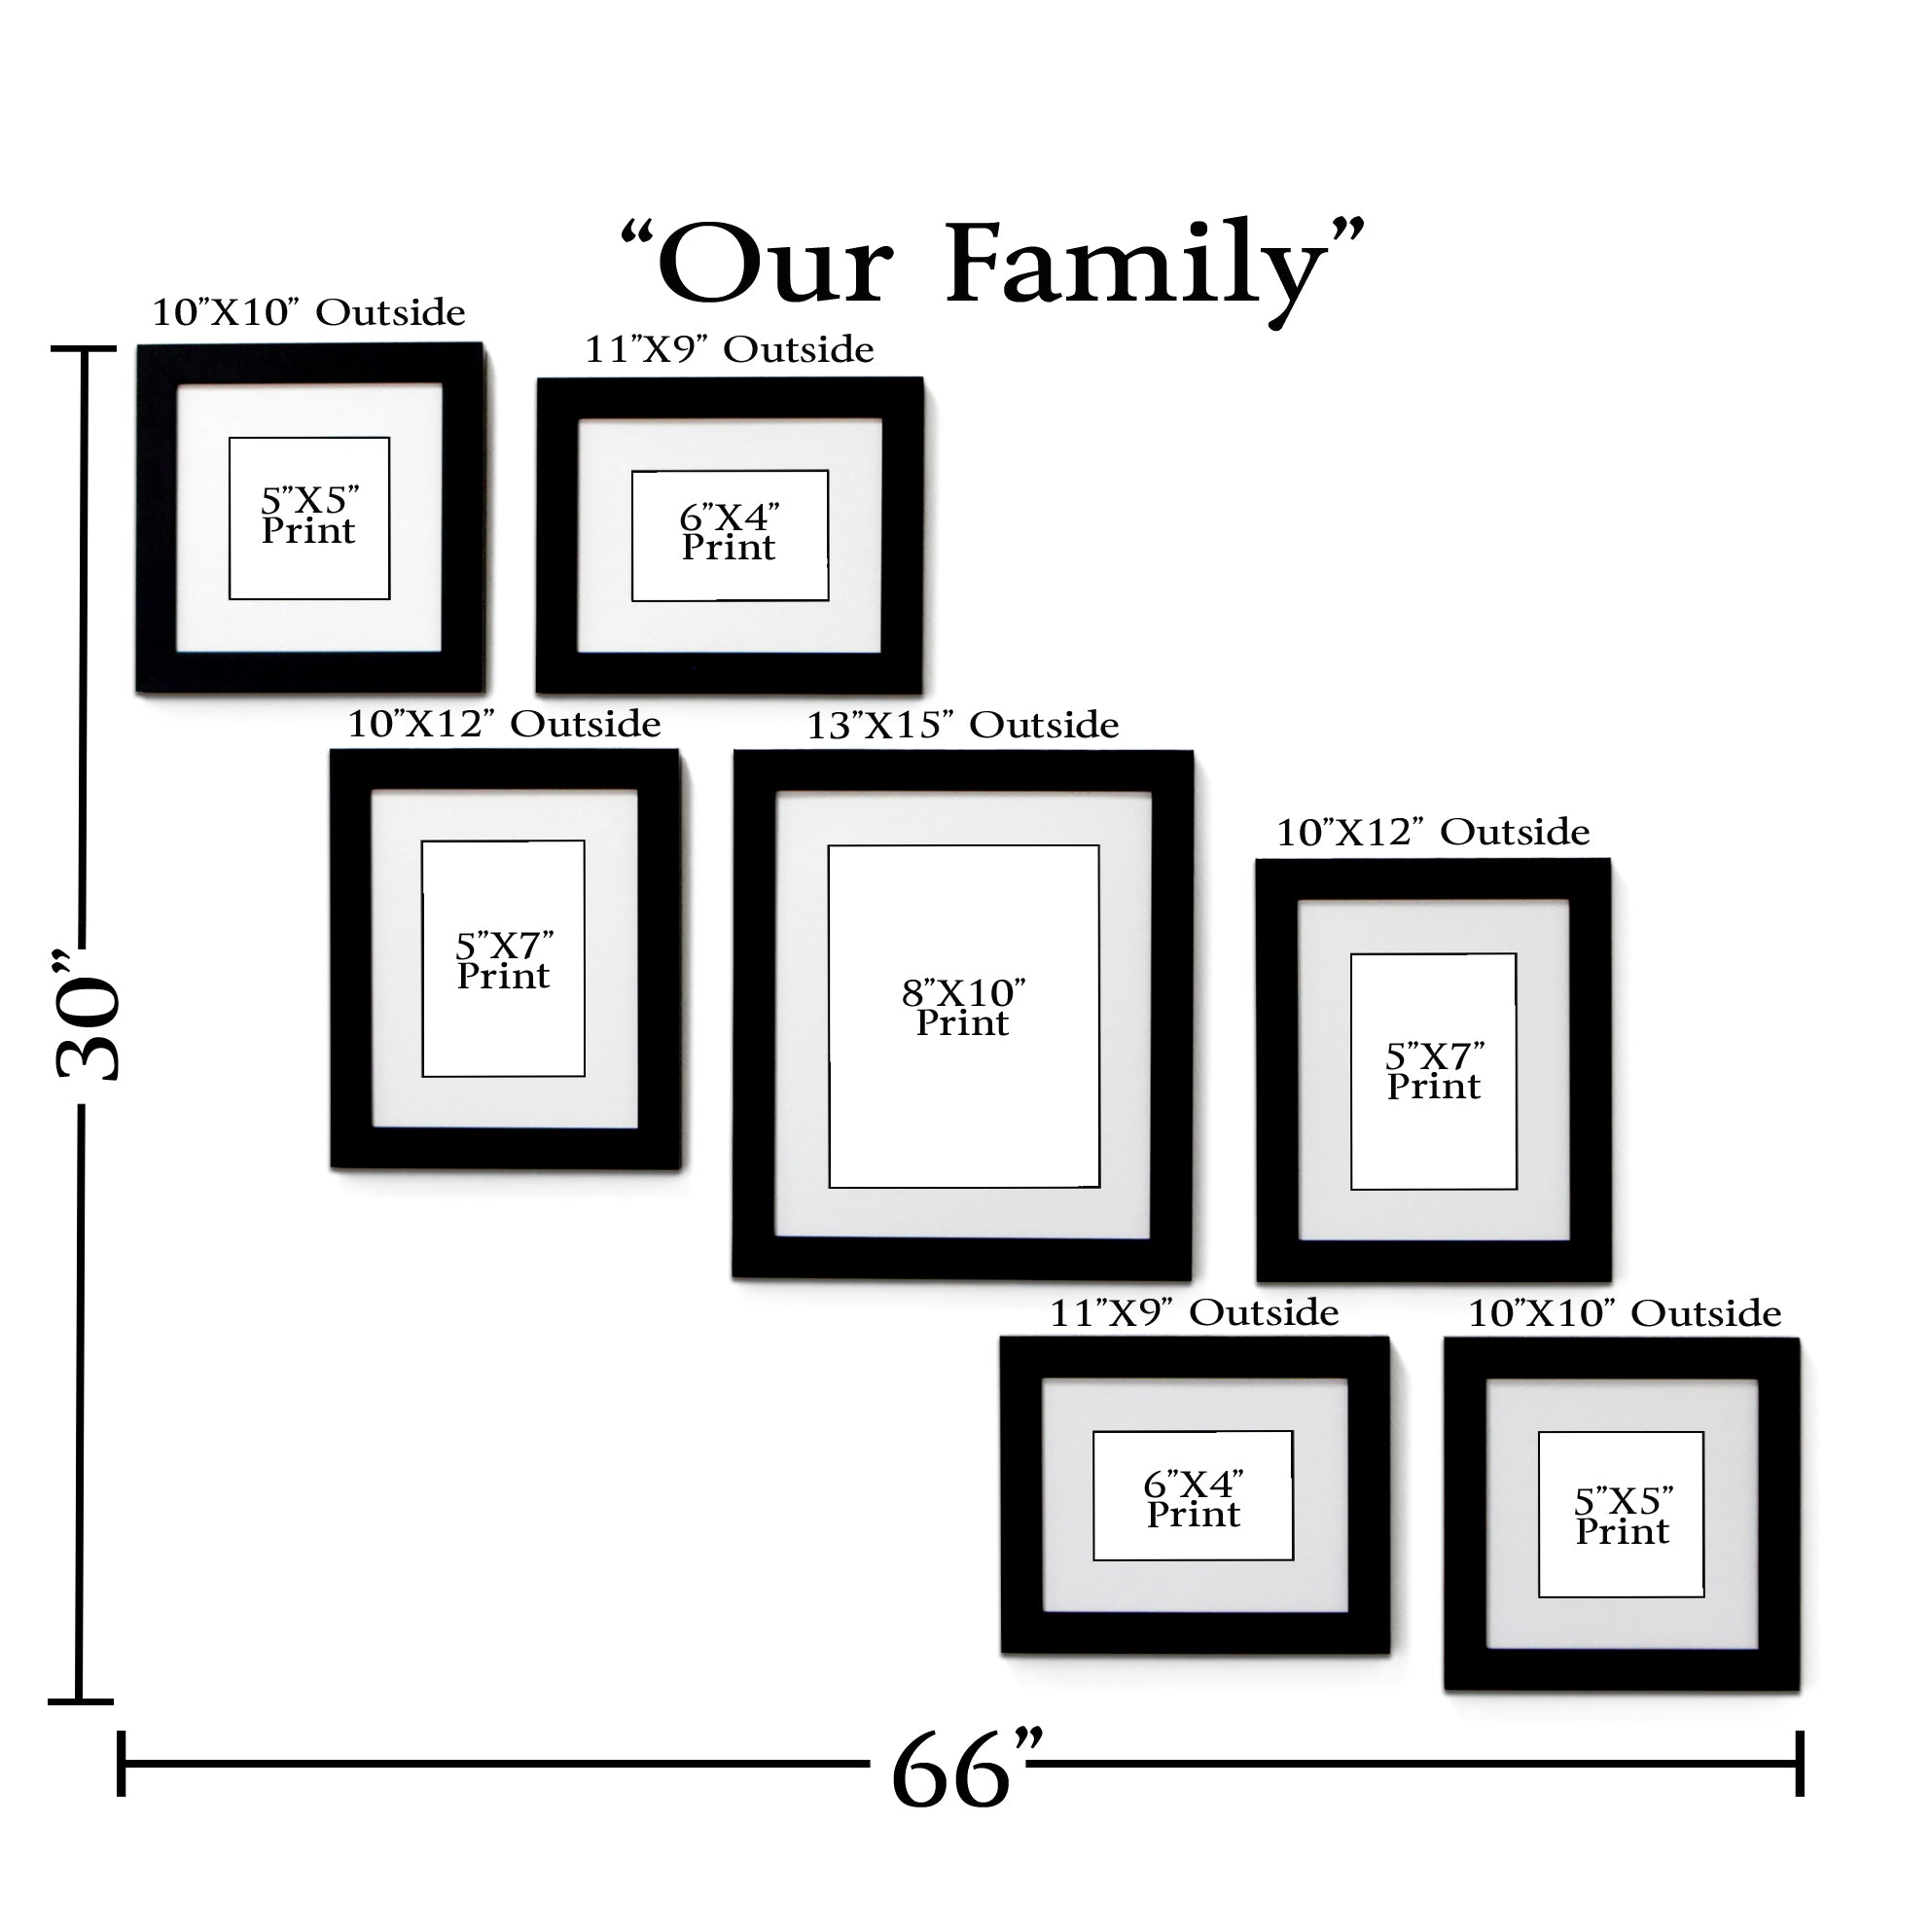 Quot Our Family Quot 7 Frame Family Portrait Gallery With 1 5